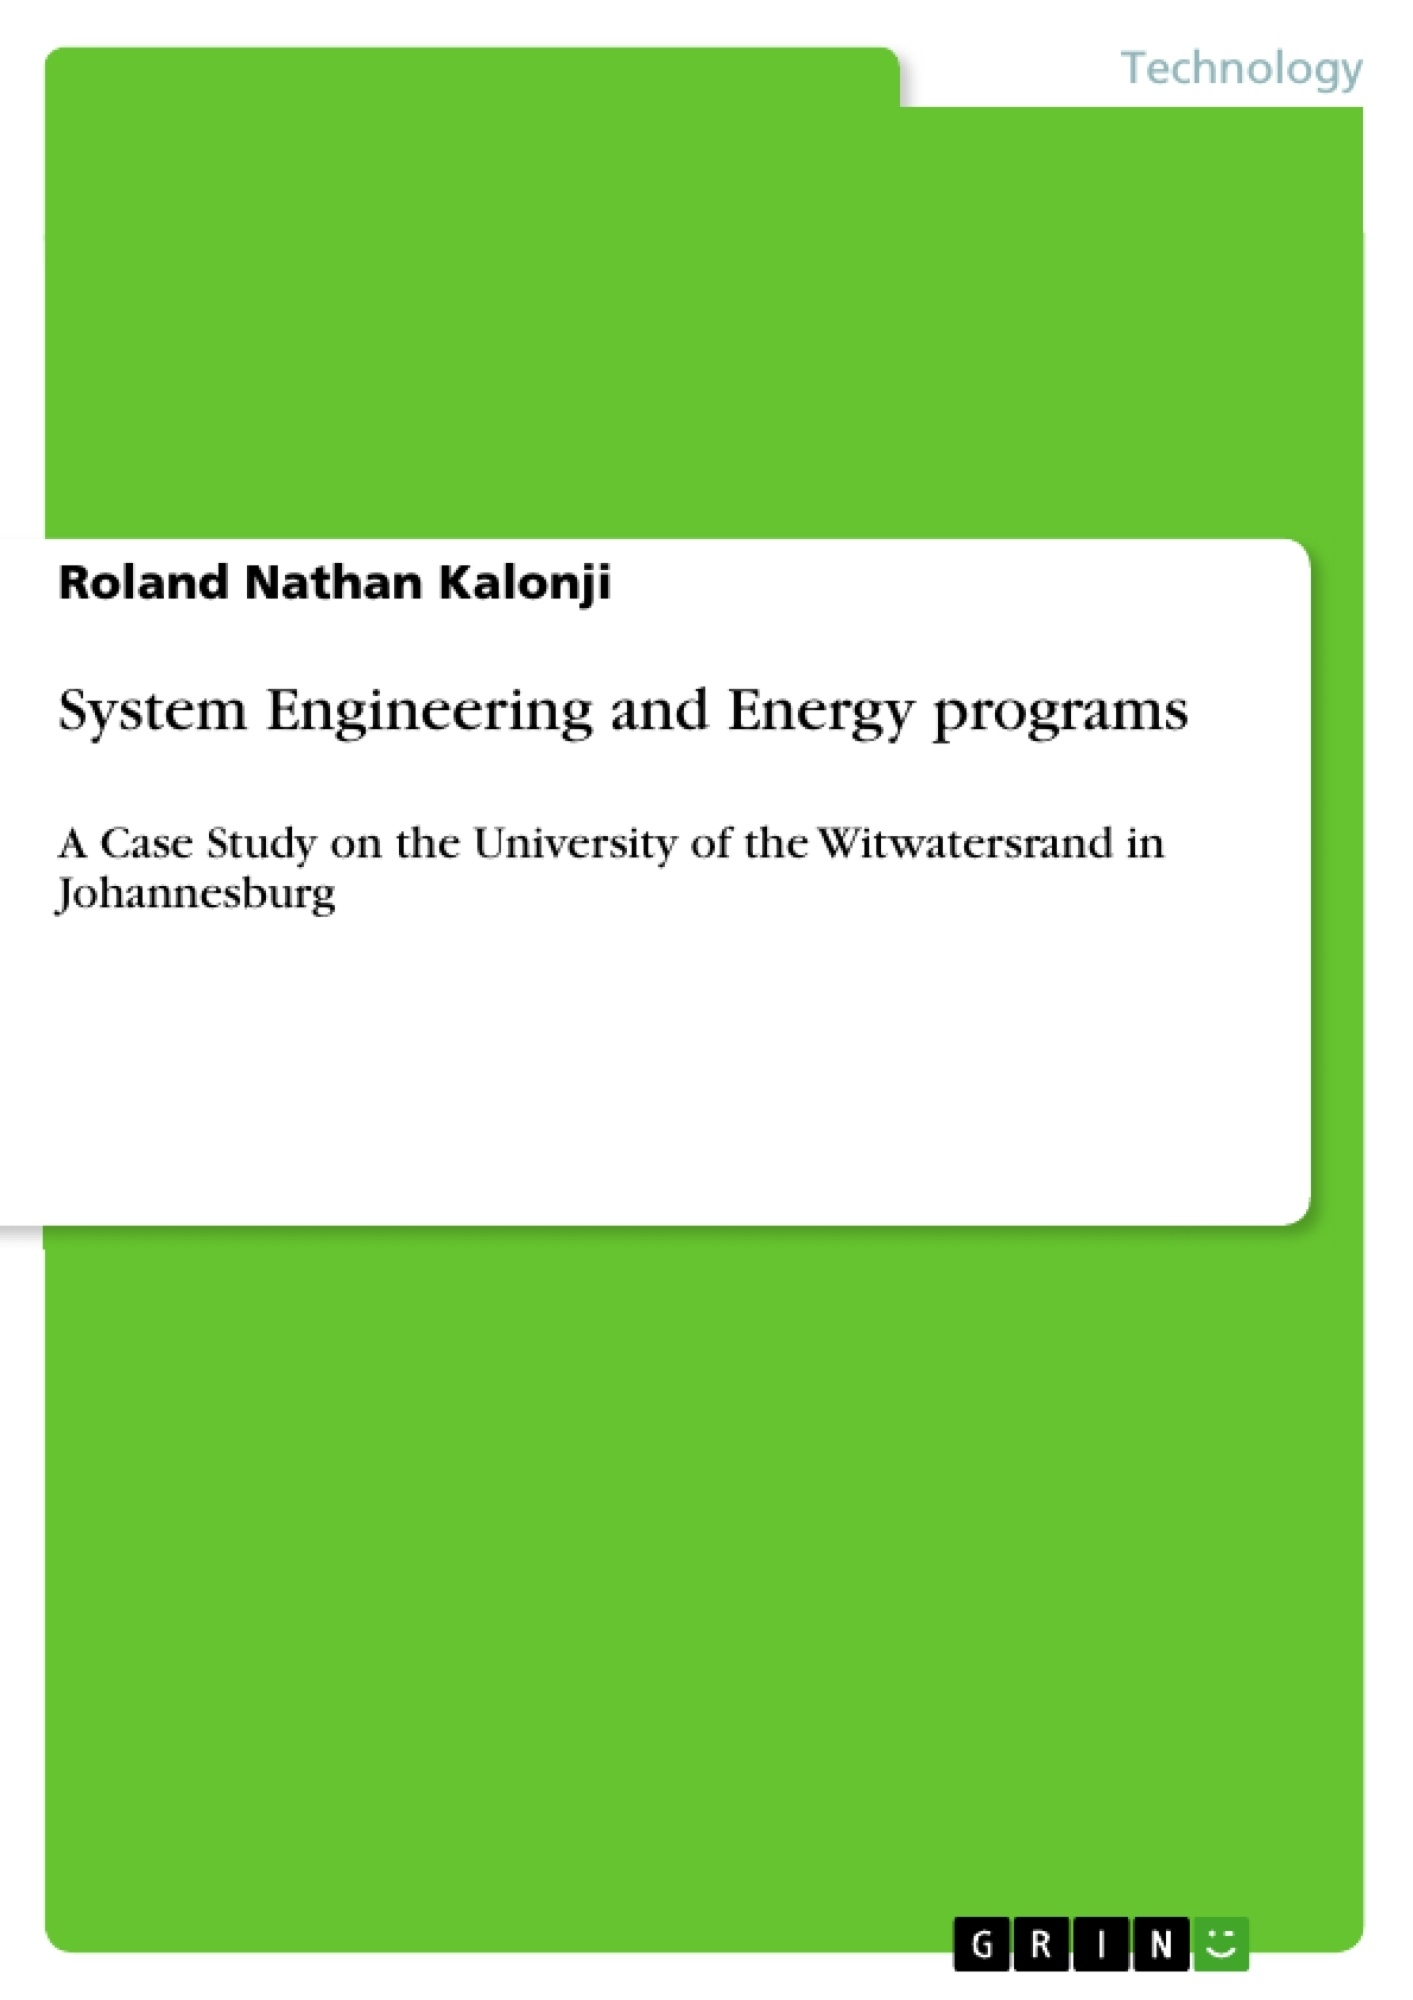 Title: System Engineering and Energy programs